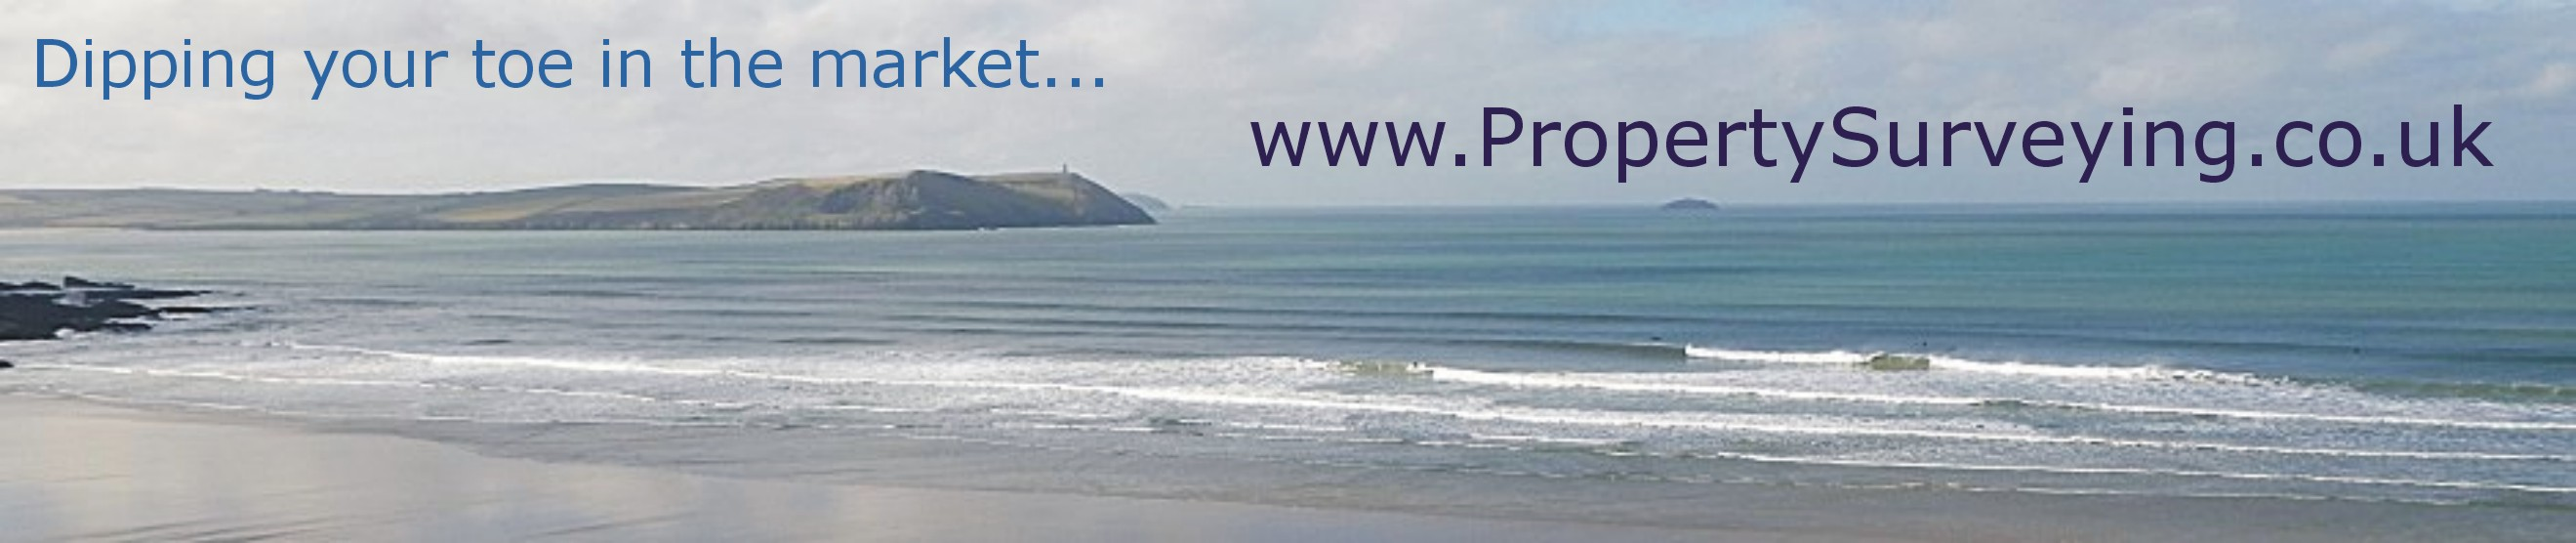 View from Polzeath, Cornwall